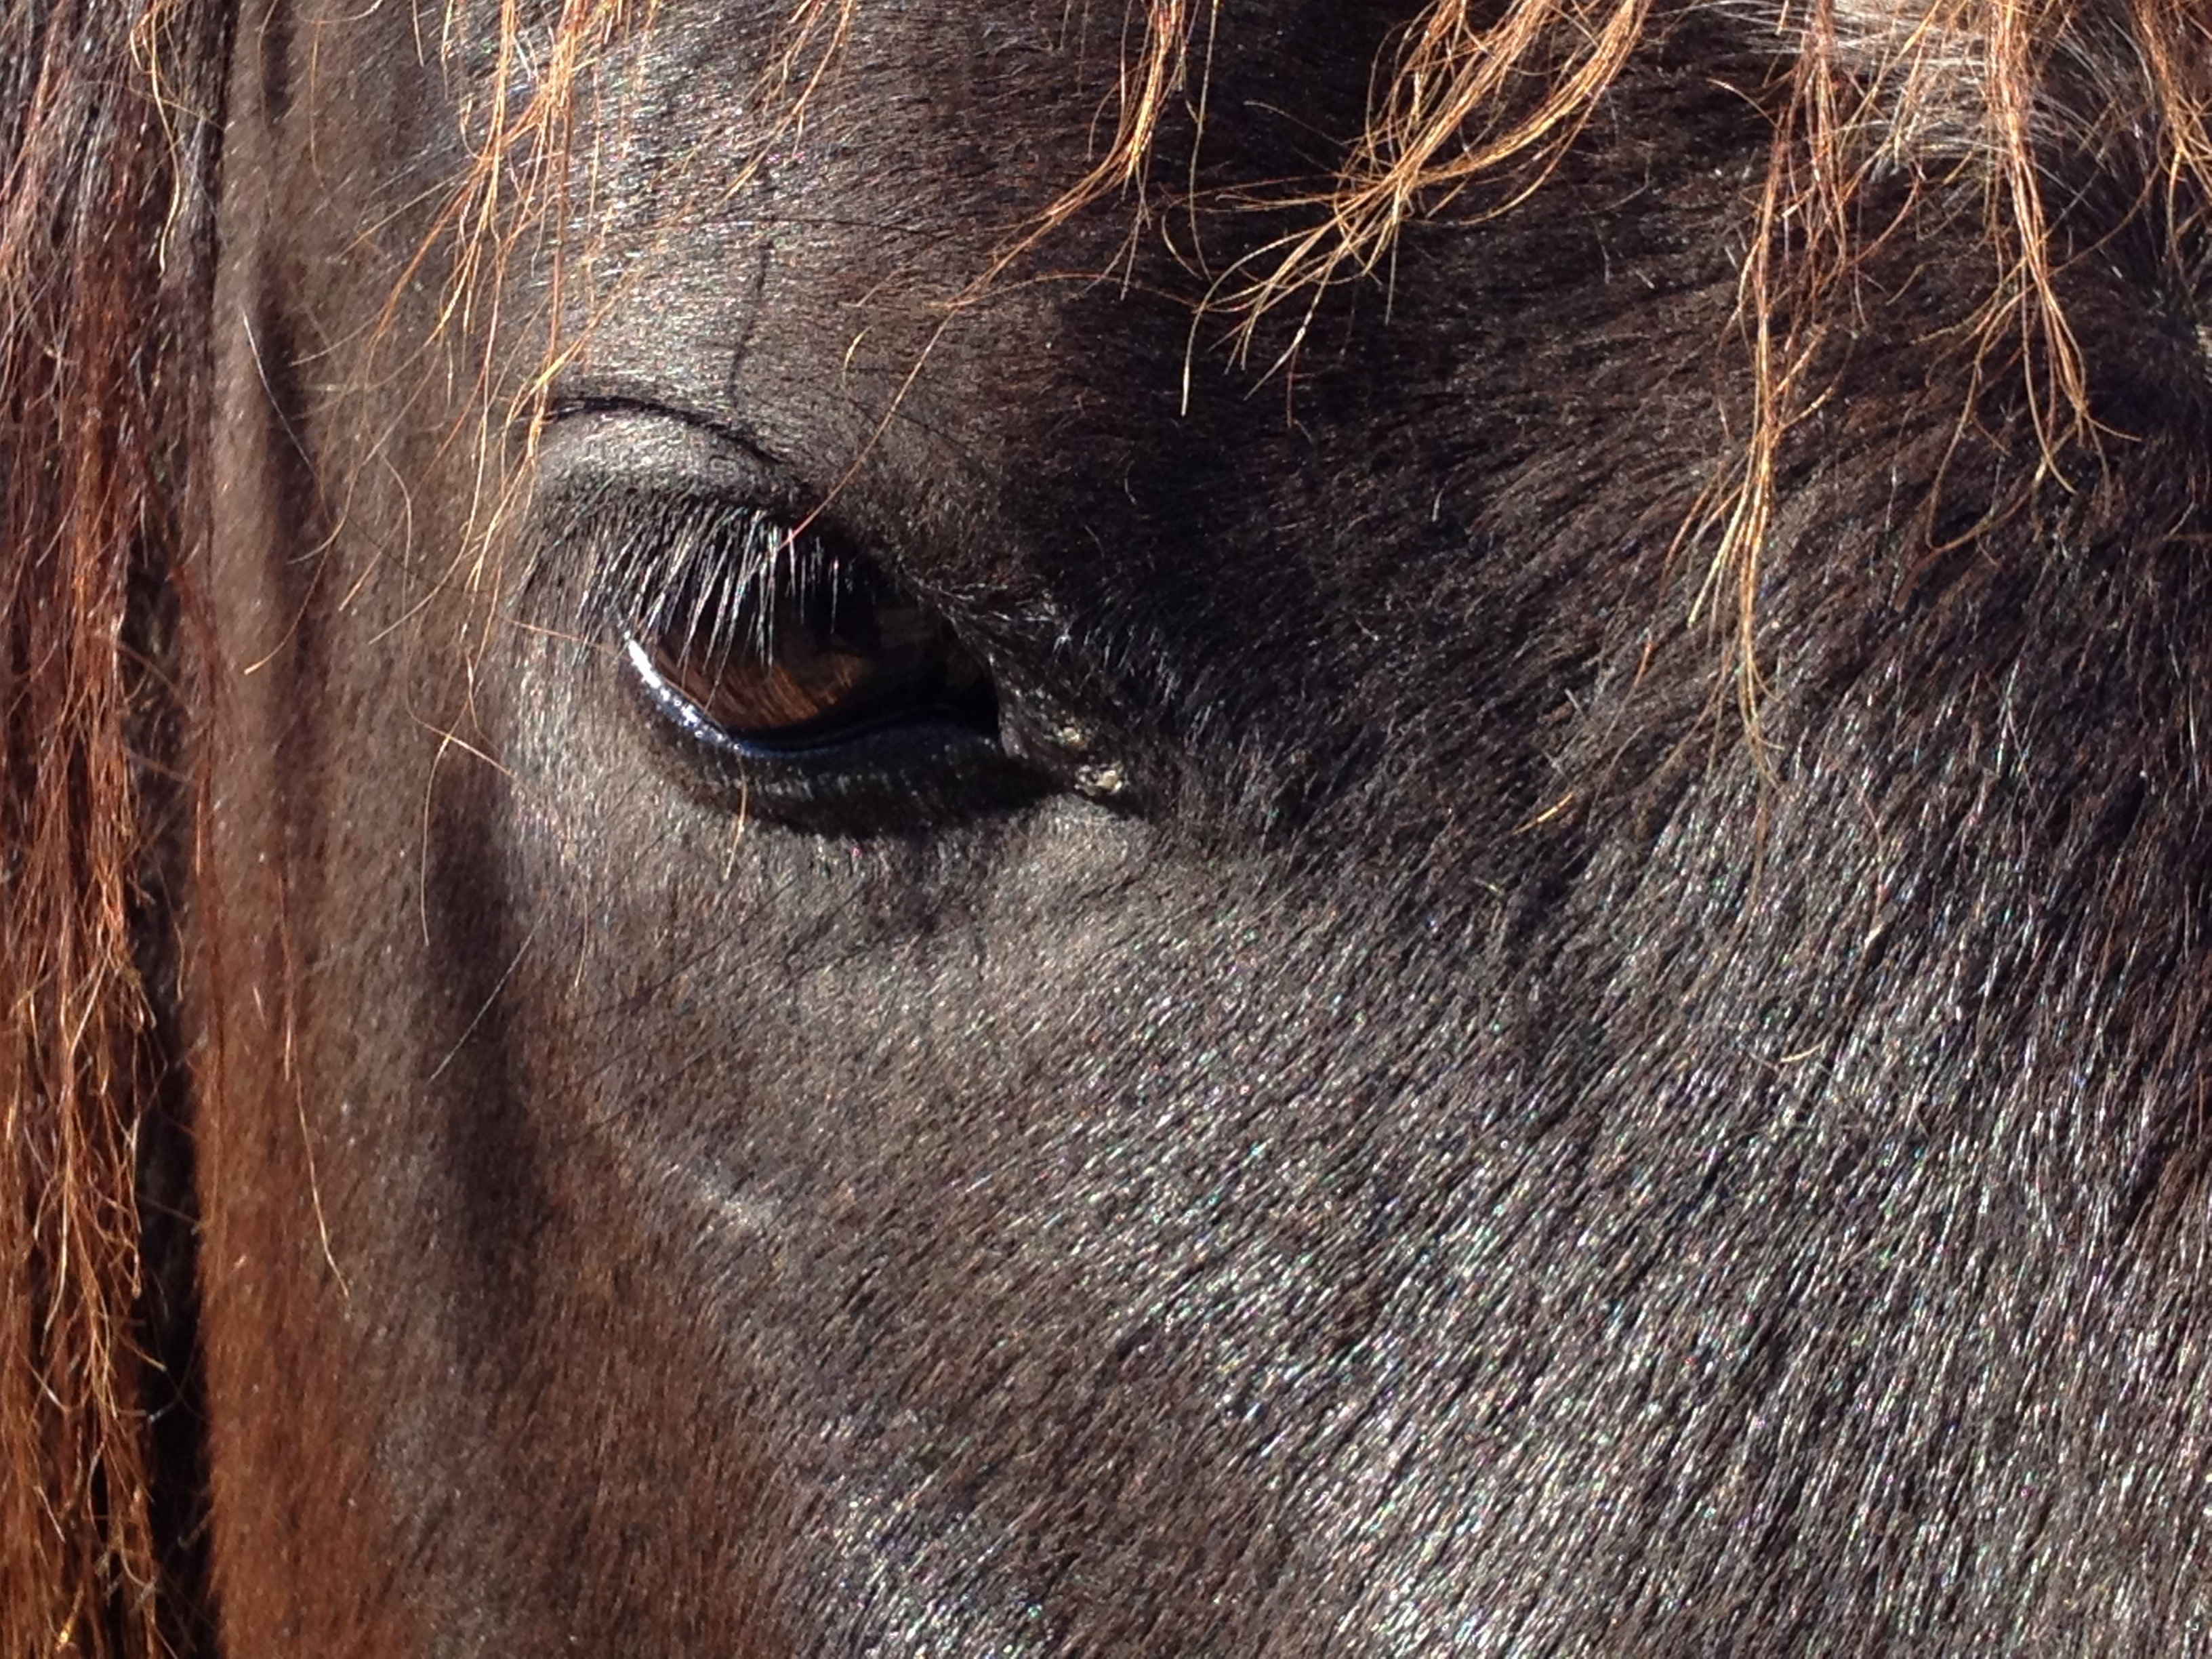 brown_horse_eye